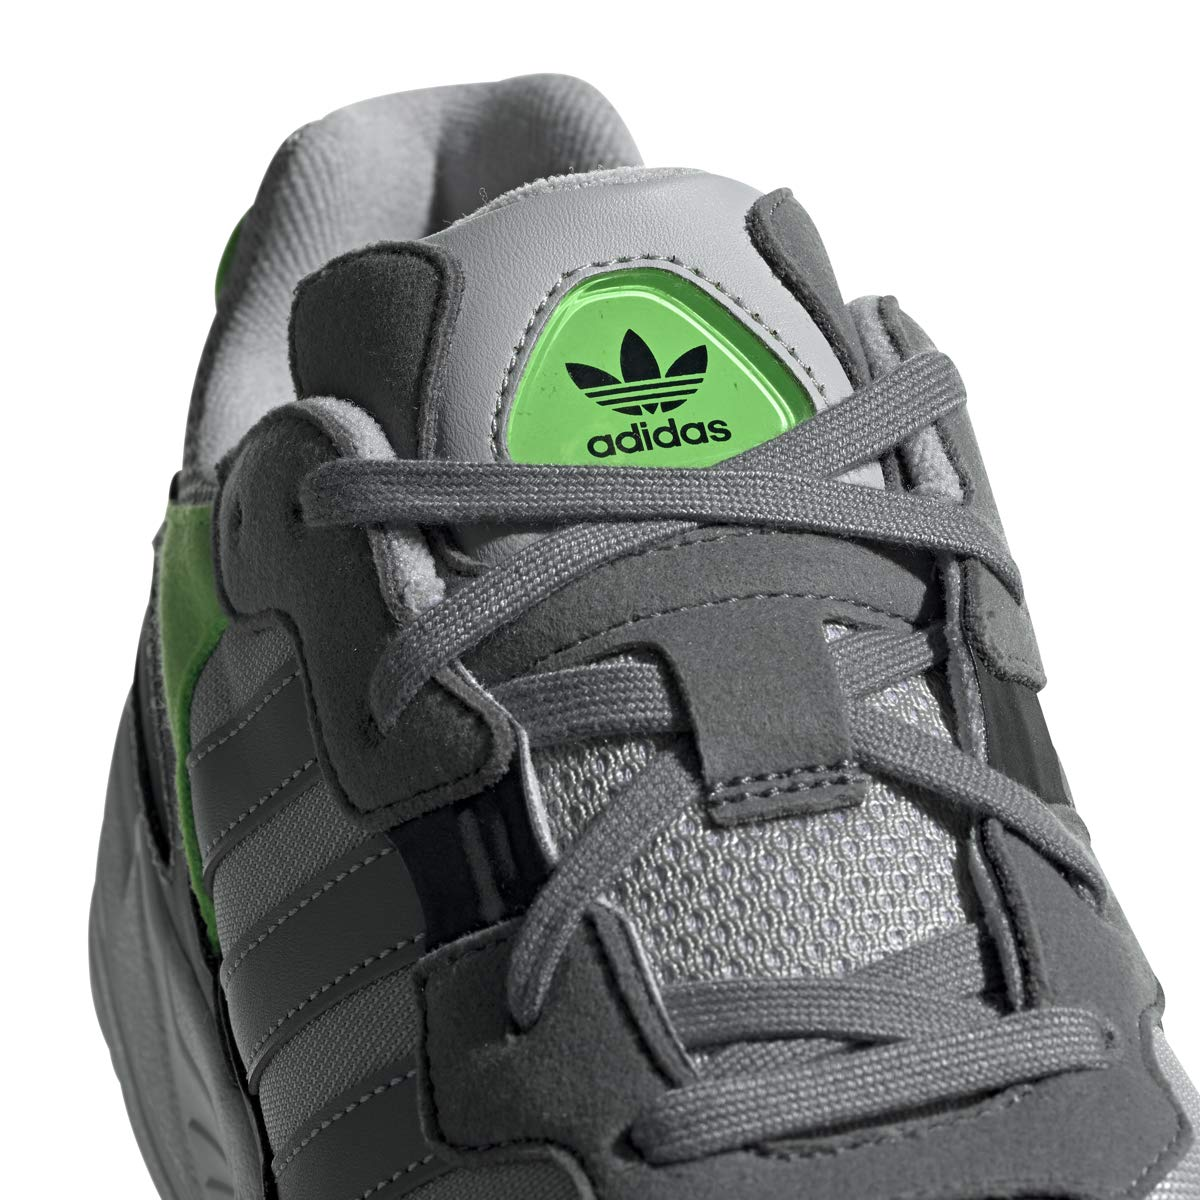 buy online a5087 98a0a Amazon.com  adidas Yung-96  Shoes